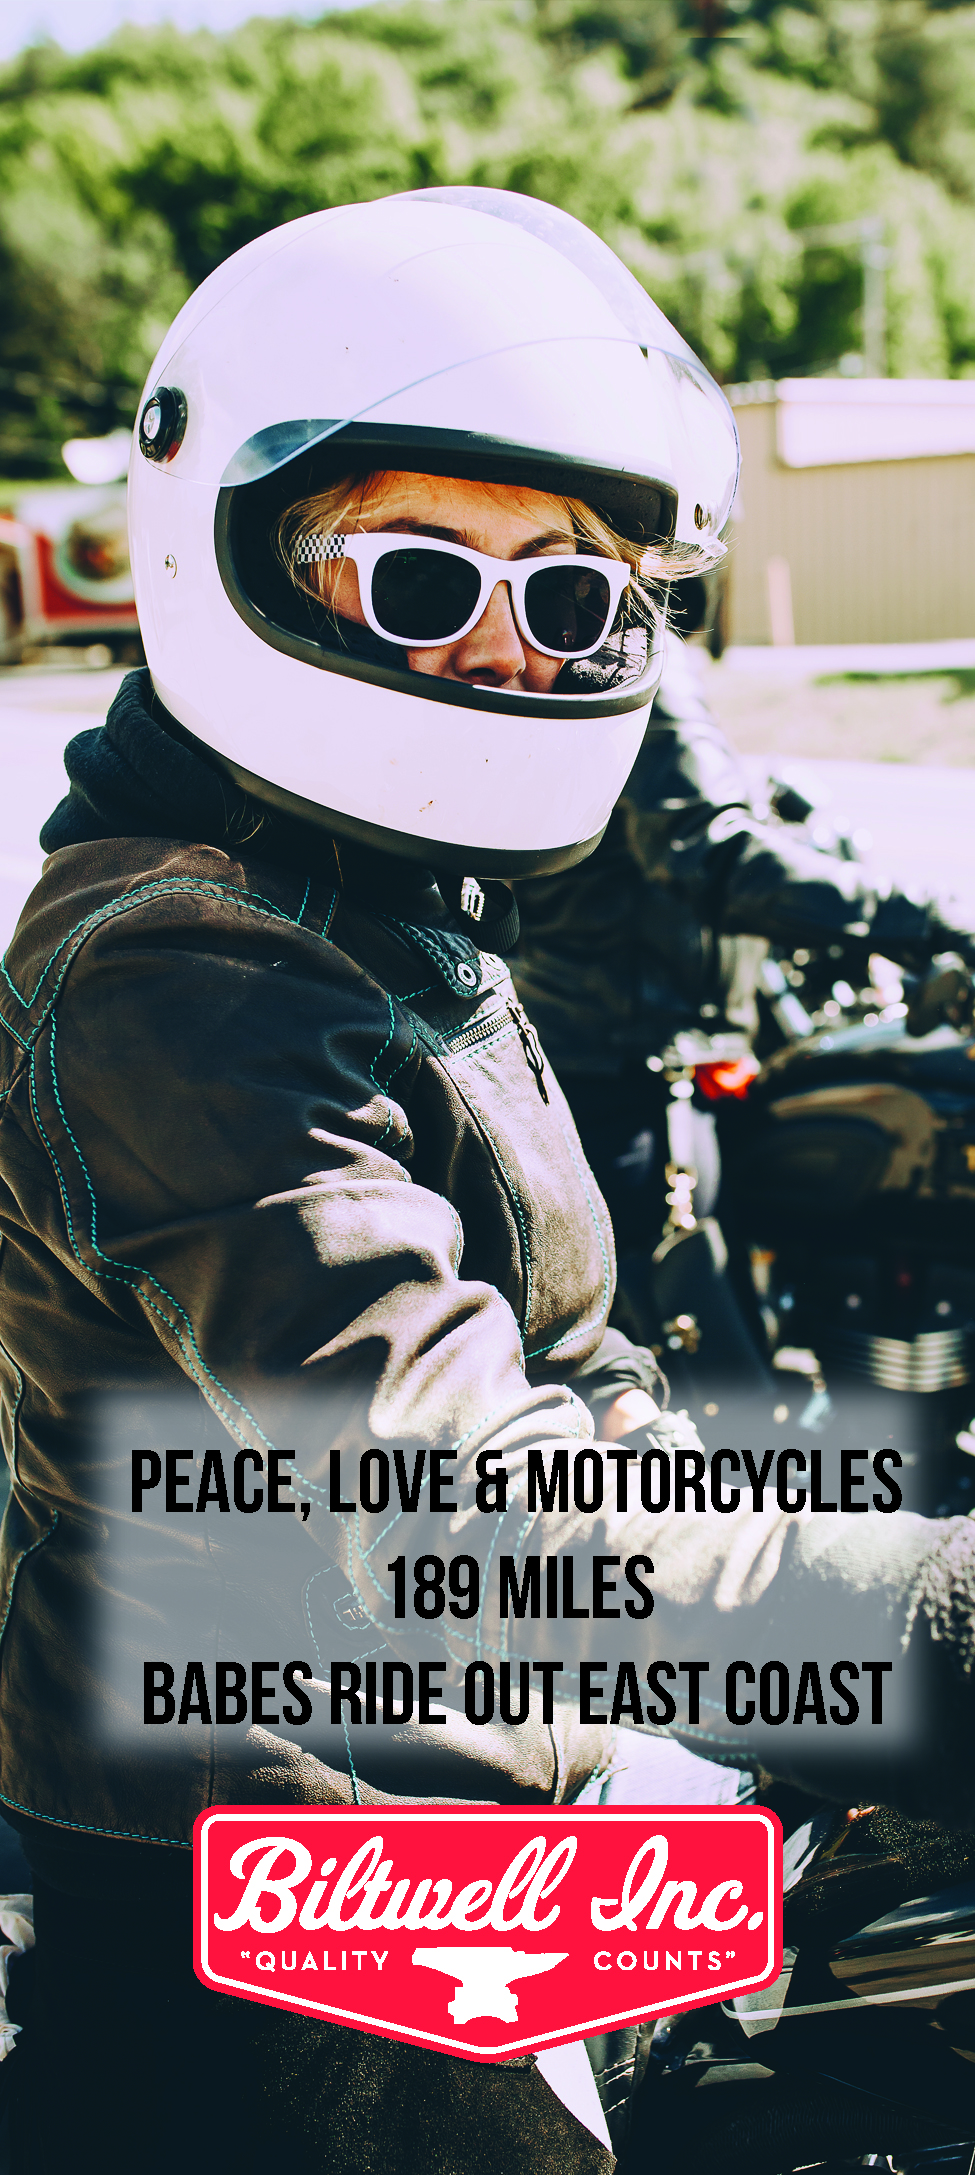 PEACE LOVE AND MOTORCYCLES (1).jpg